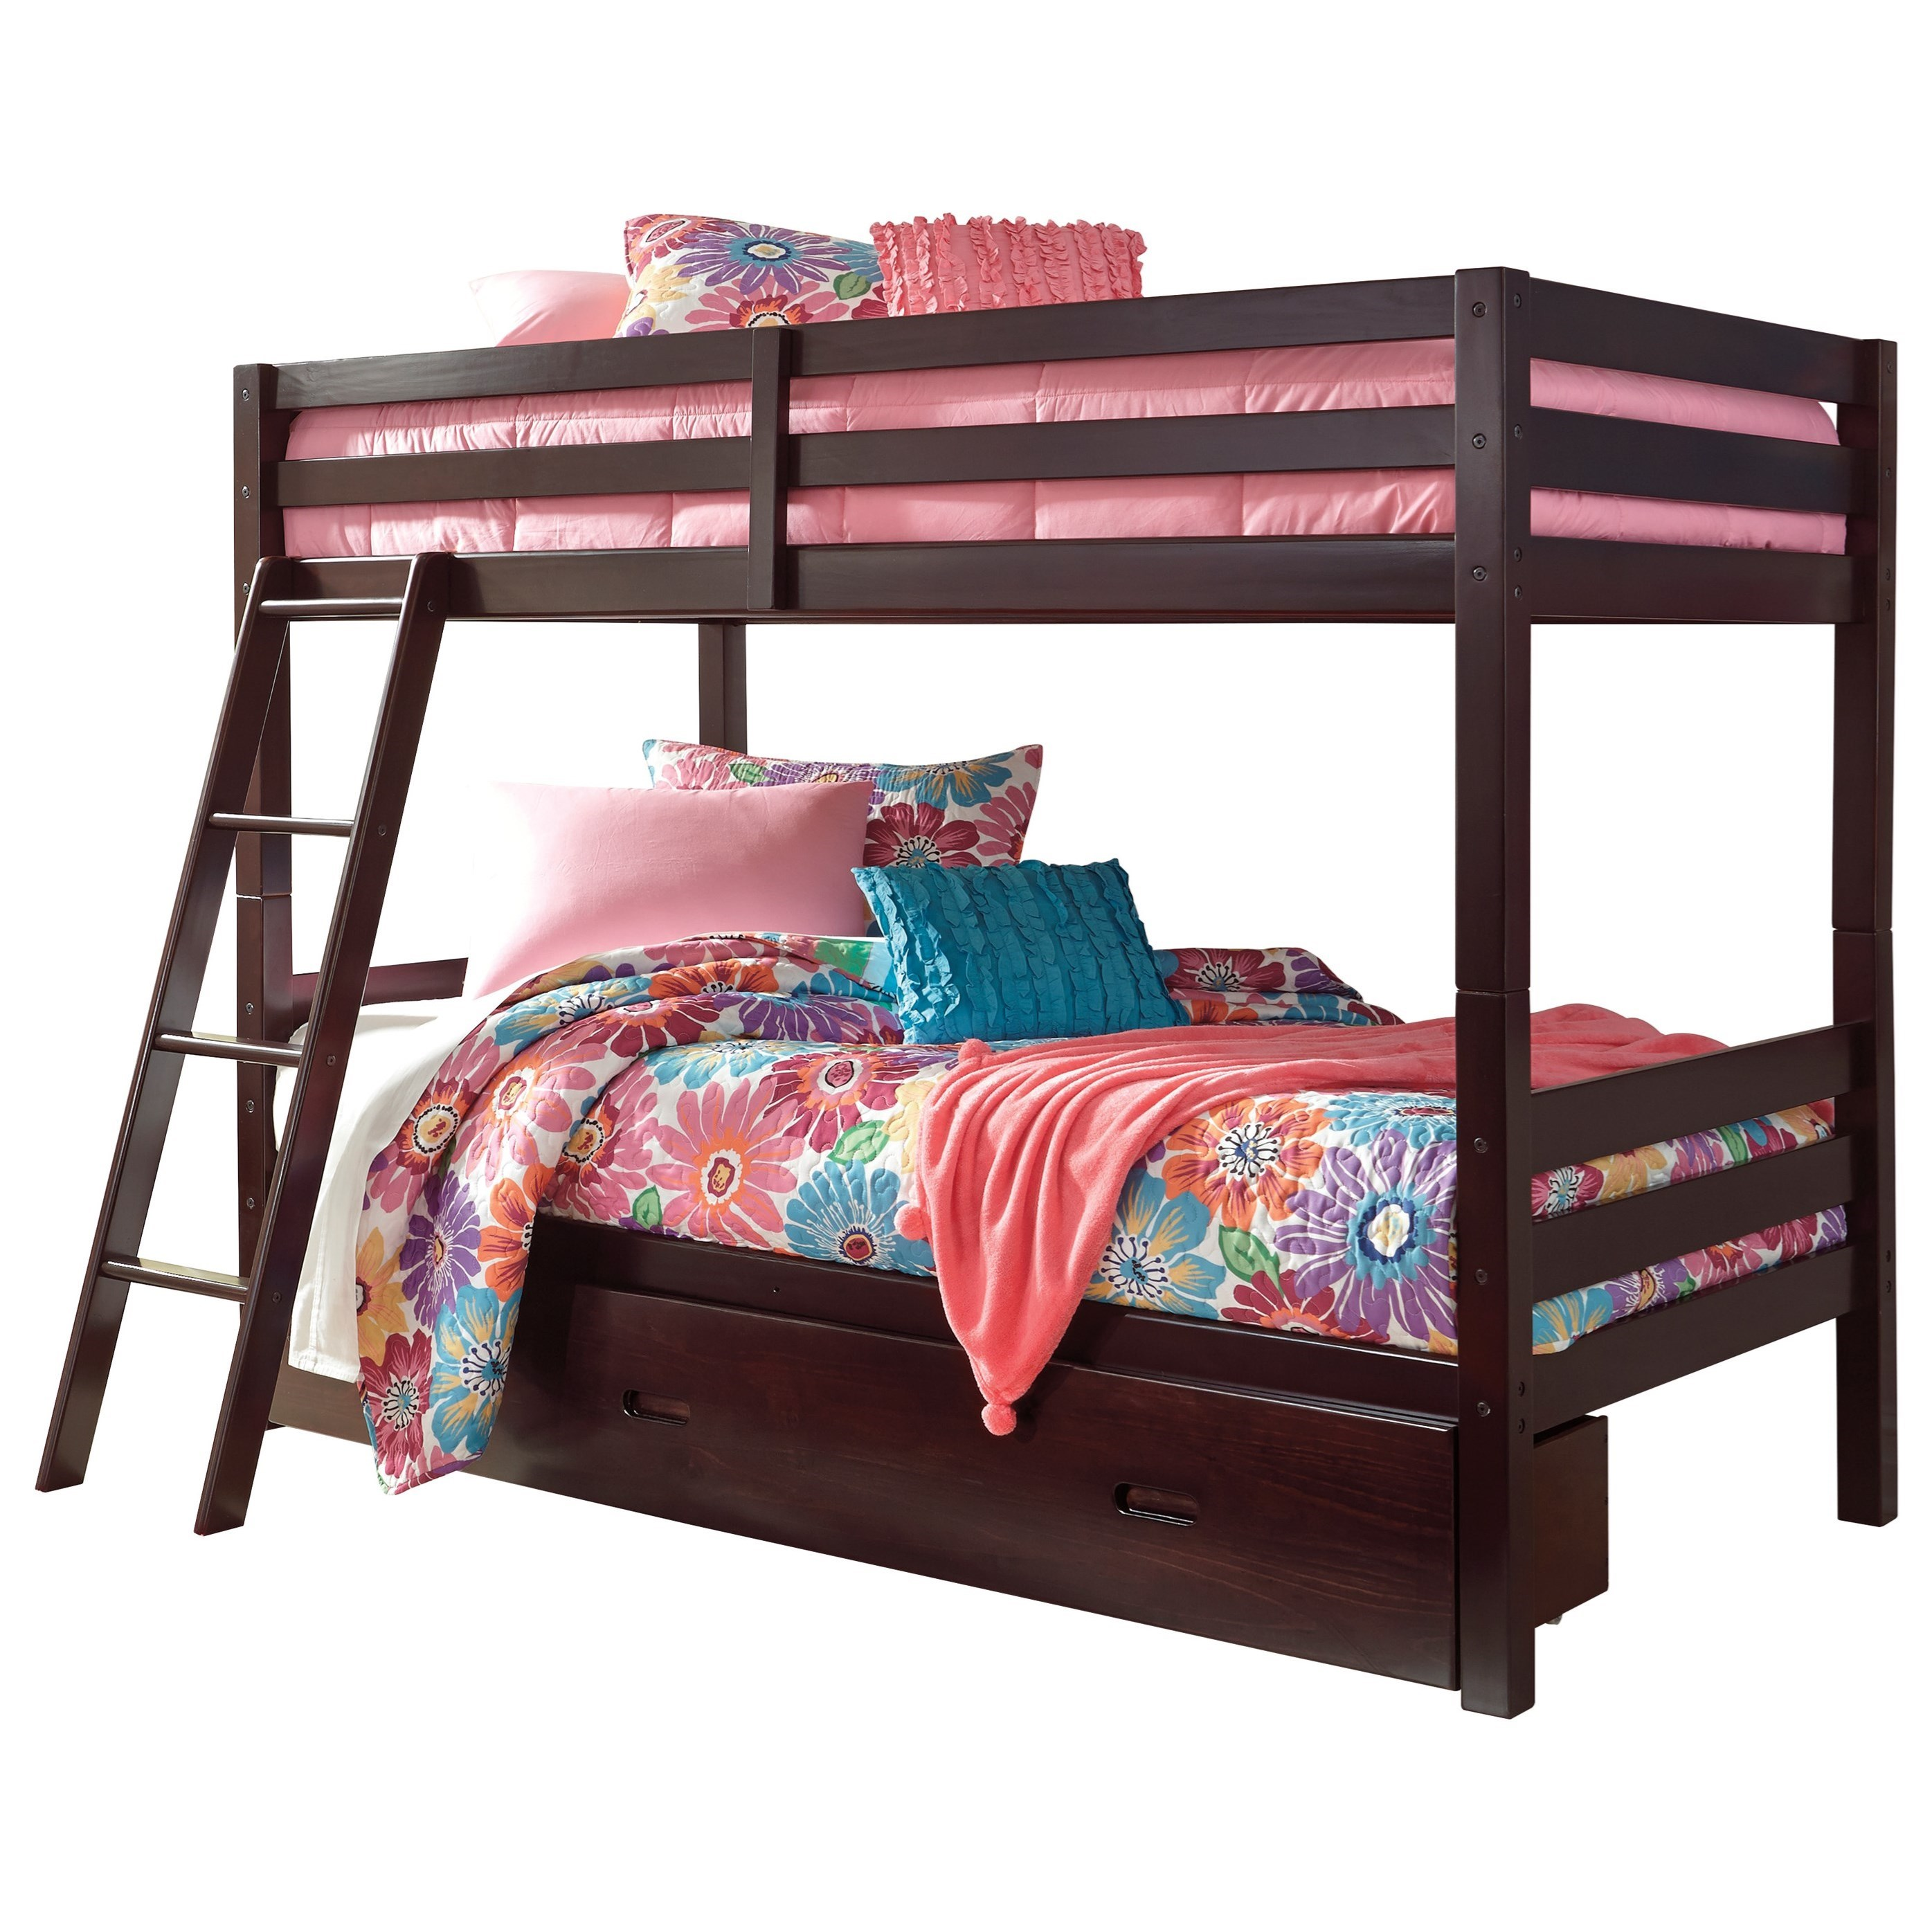 Solid Pine Twin/Twin Bunk Bed w/ Under Bed Storage